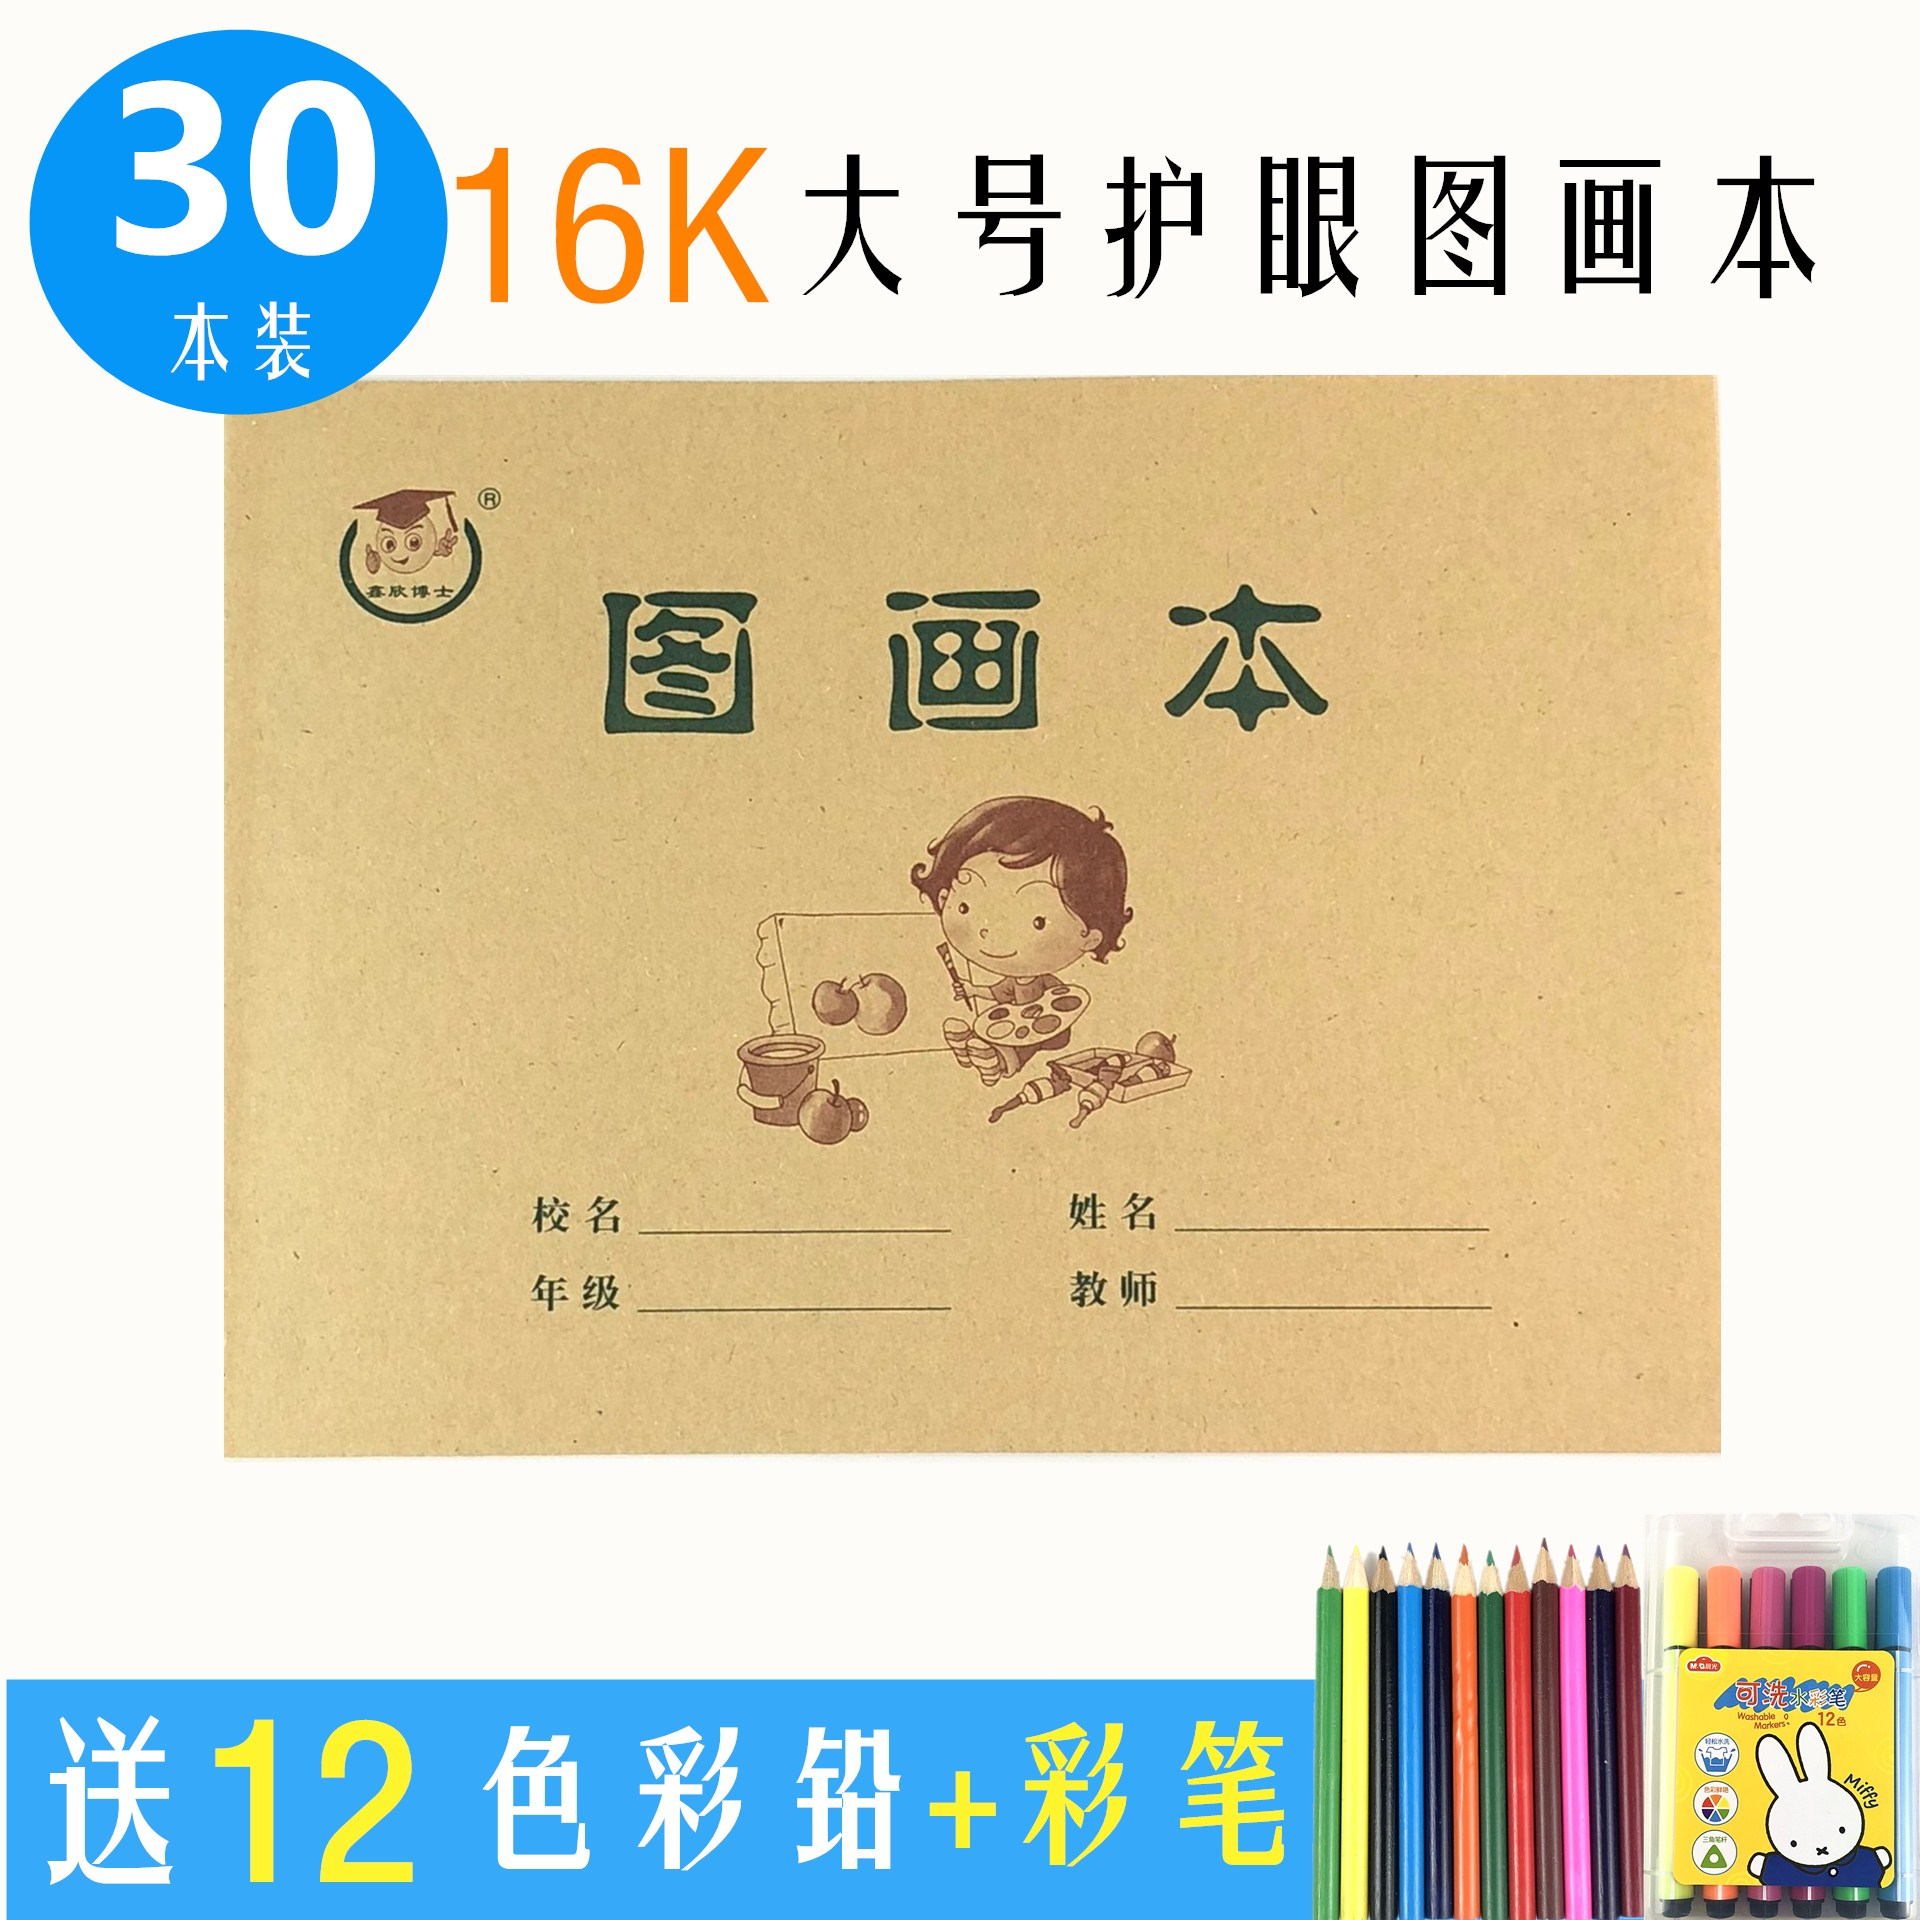 16K LARGE PICTURE BOOK (30 COPIES) TO SEND MORNING LIGHT 12 COLOR WATERCOLOR PEN